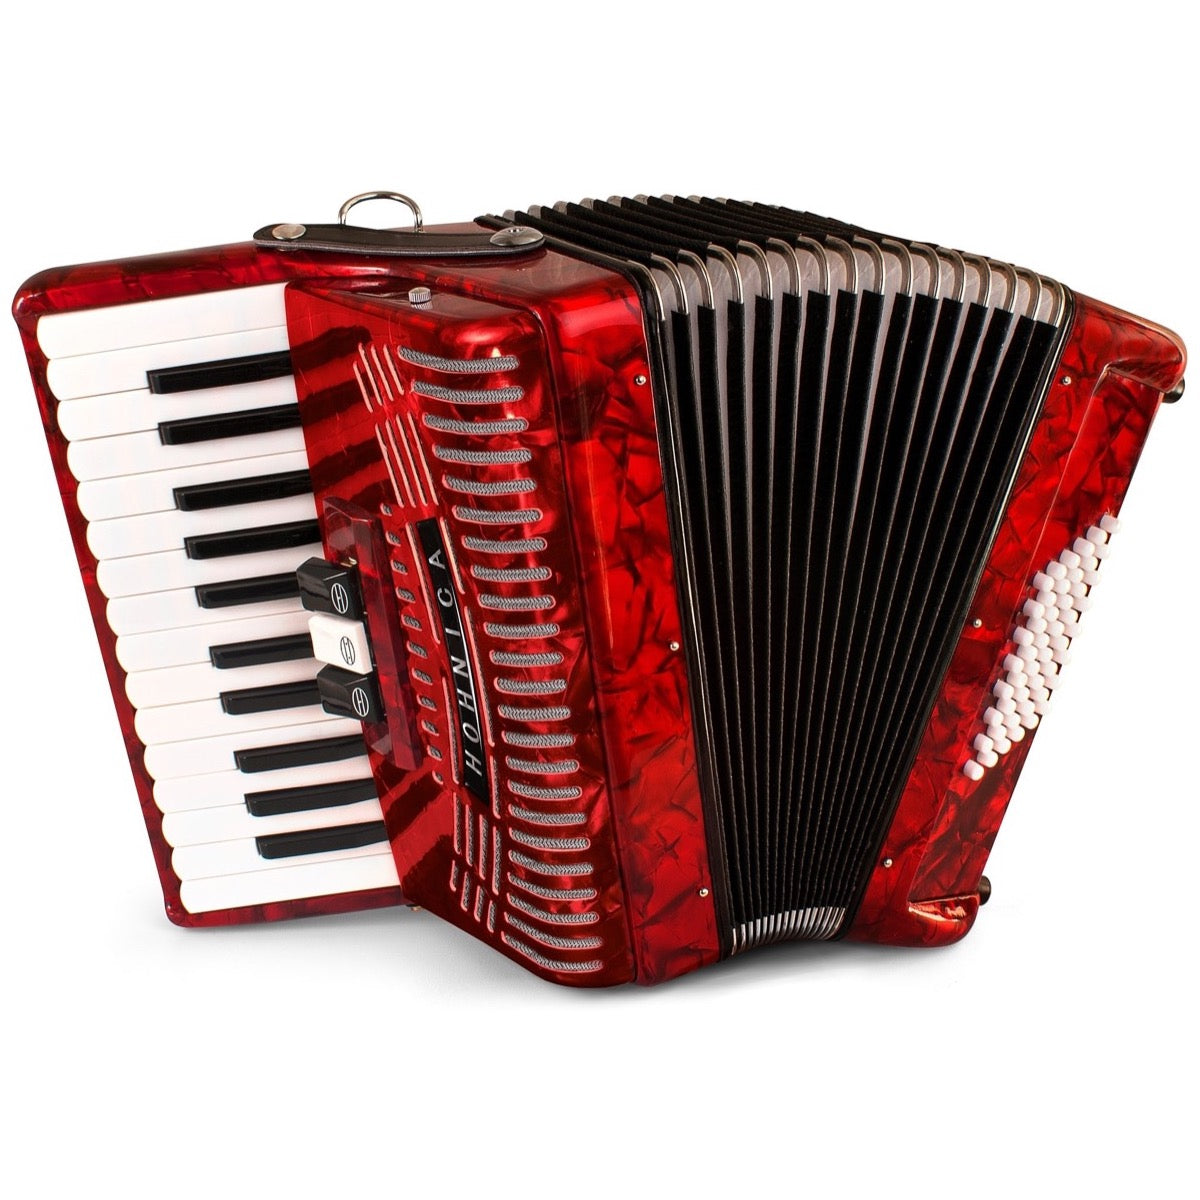 Hohner 1304-RED 48 Bass Piano Accordion, Pearl Red